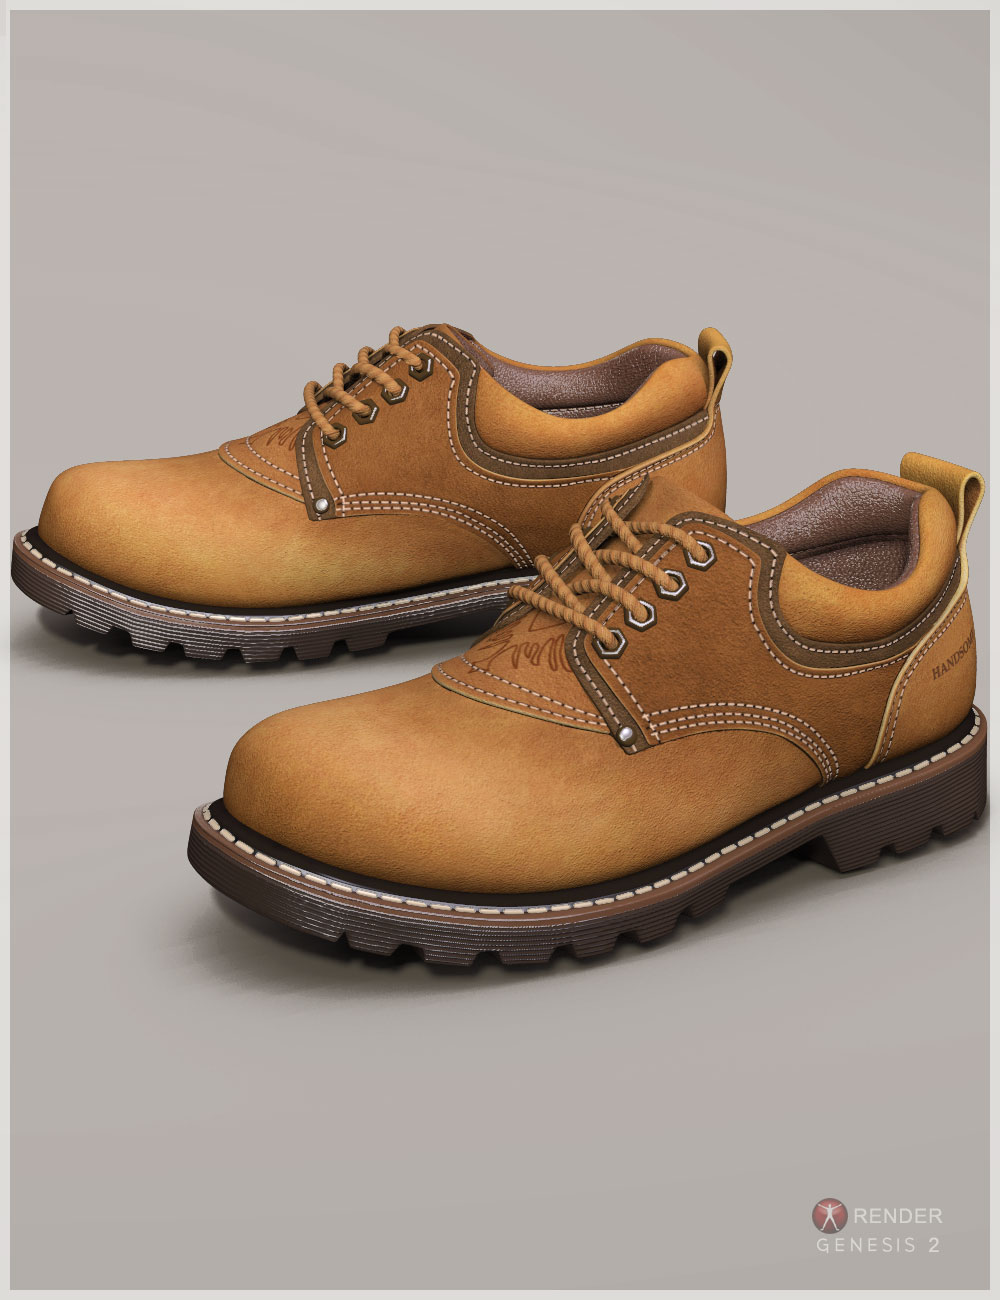 Short Boots for Genesis 2 & 3 Male(s) by: Cute3D, 3D Models by Daz 3D